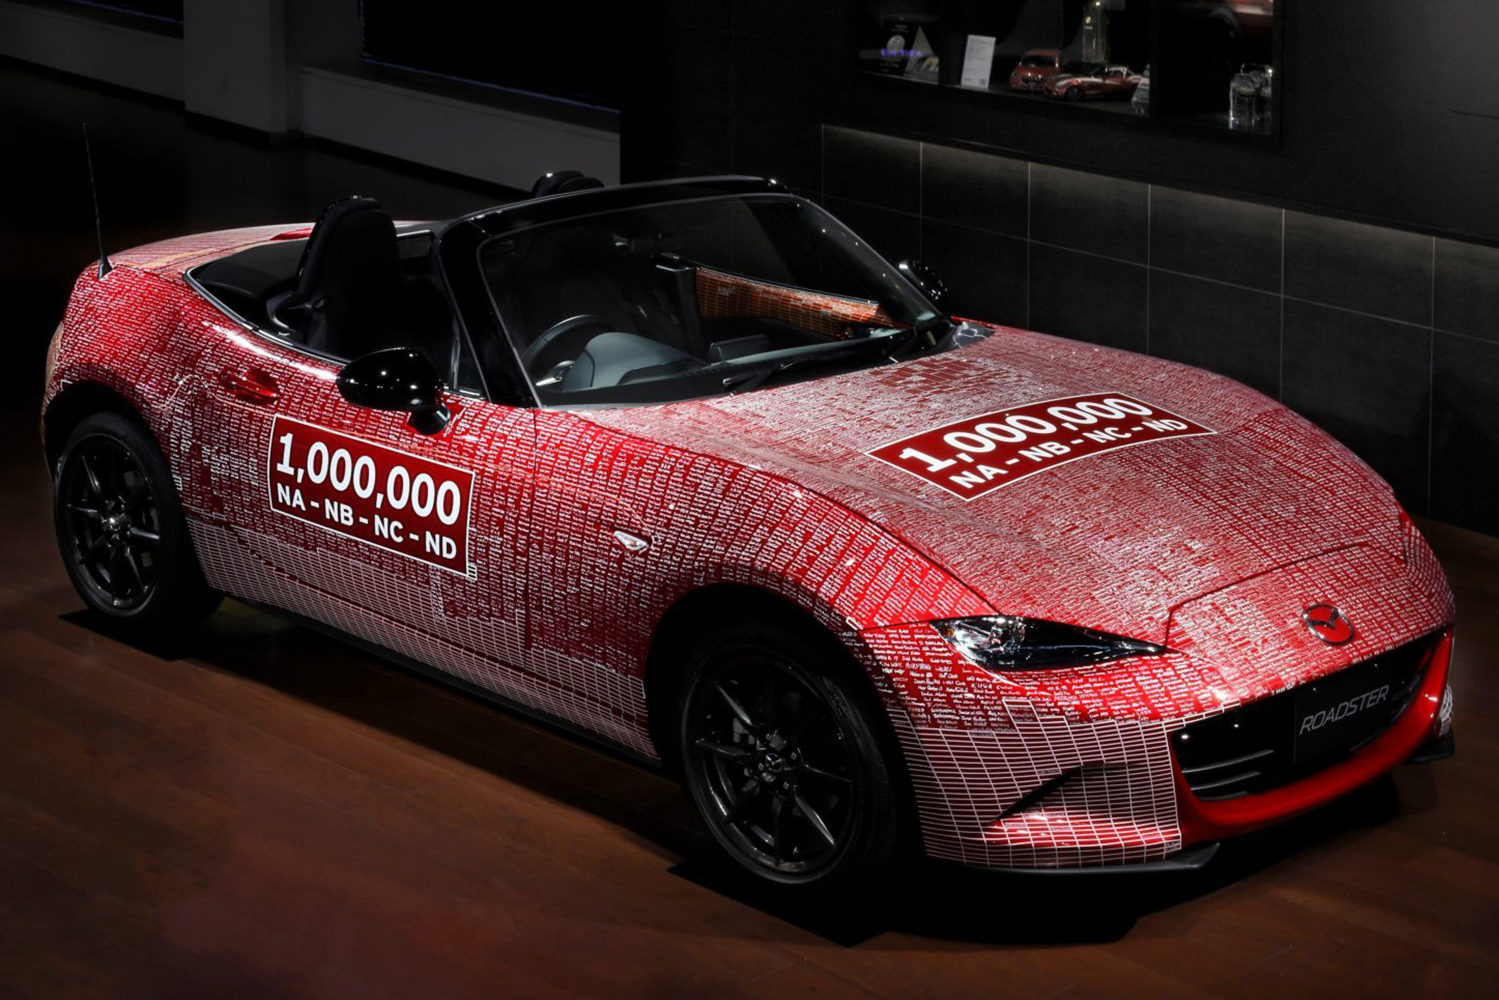 ONE-MILLIONTH MAZDA MX-5 MIATA COMES HOME